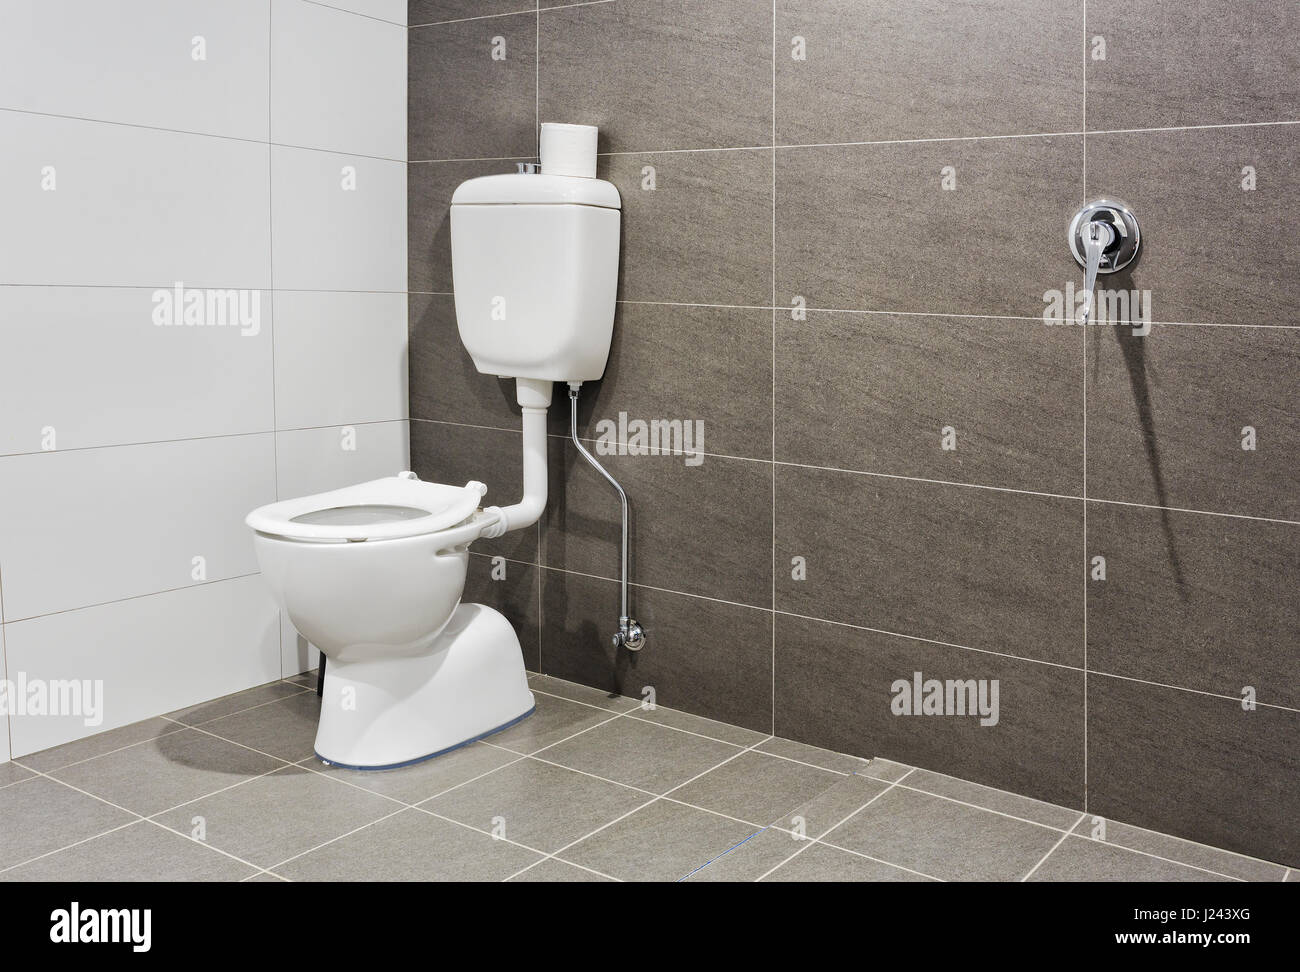 Badezimmer Acces Disabled Toilet Access Stockfotos Disabled Toilet Access Bilder